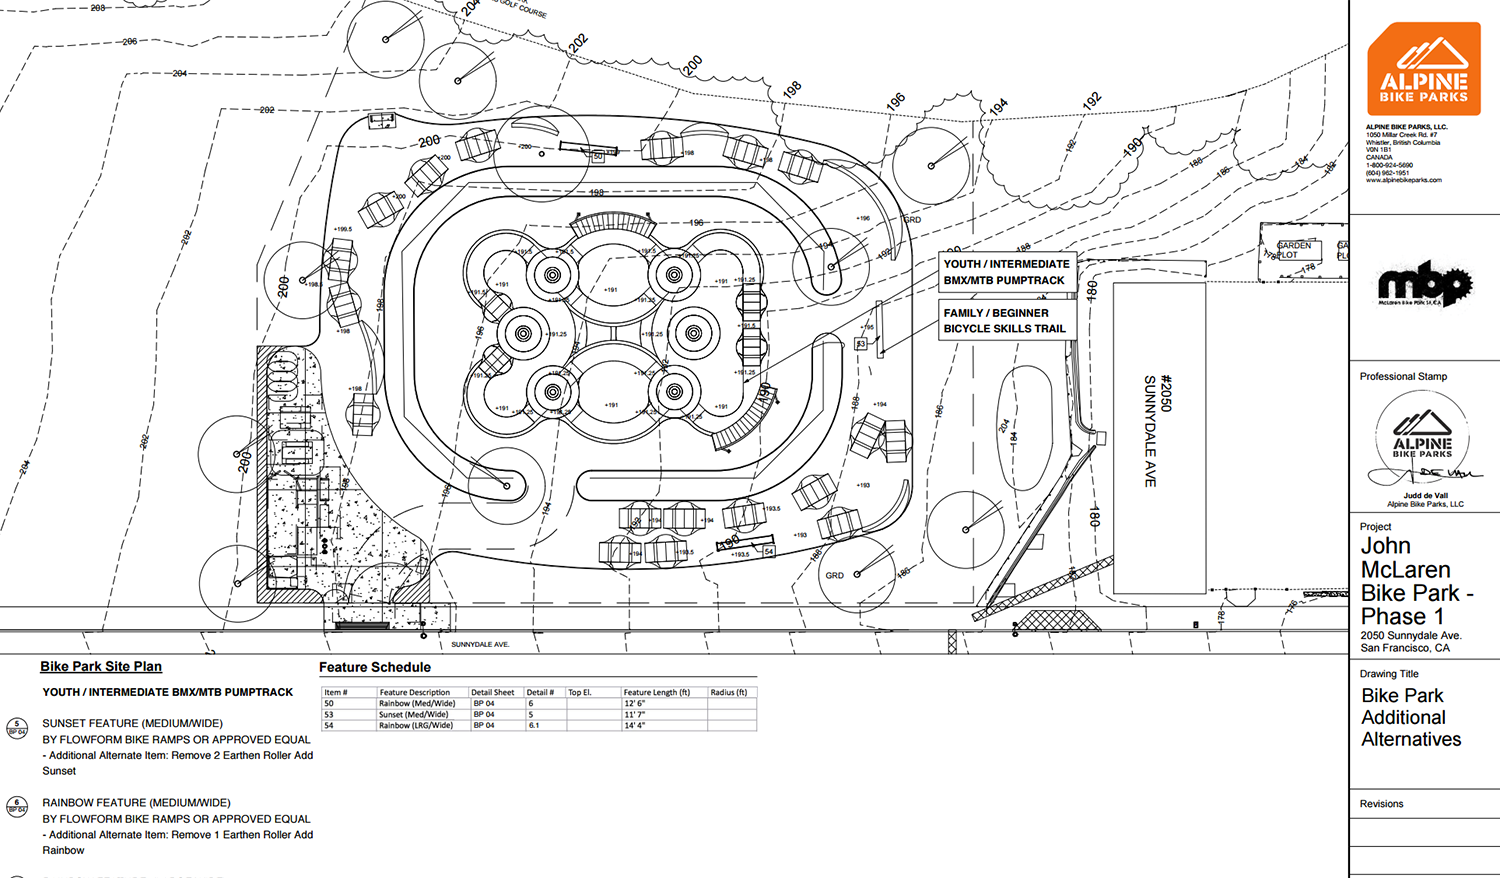 McLaren Bike Park SF, CA Update: Construction Documents out to Bid